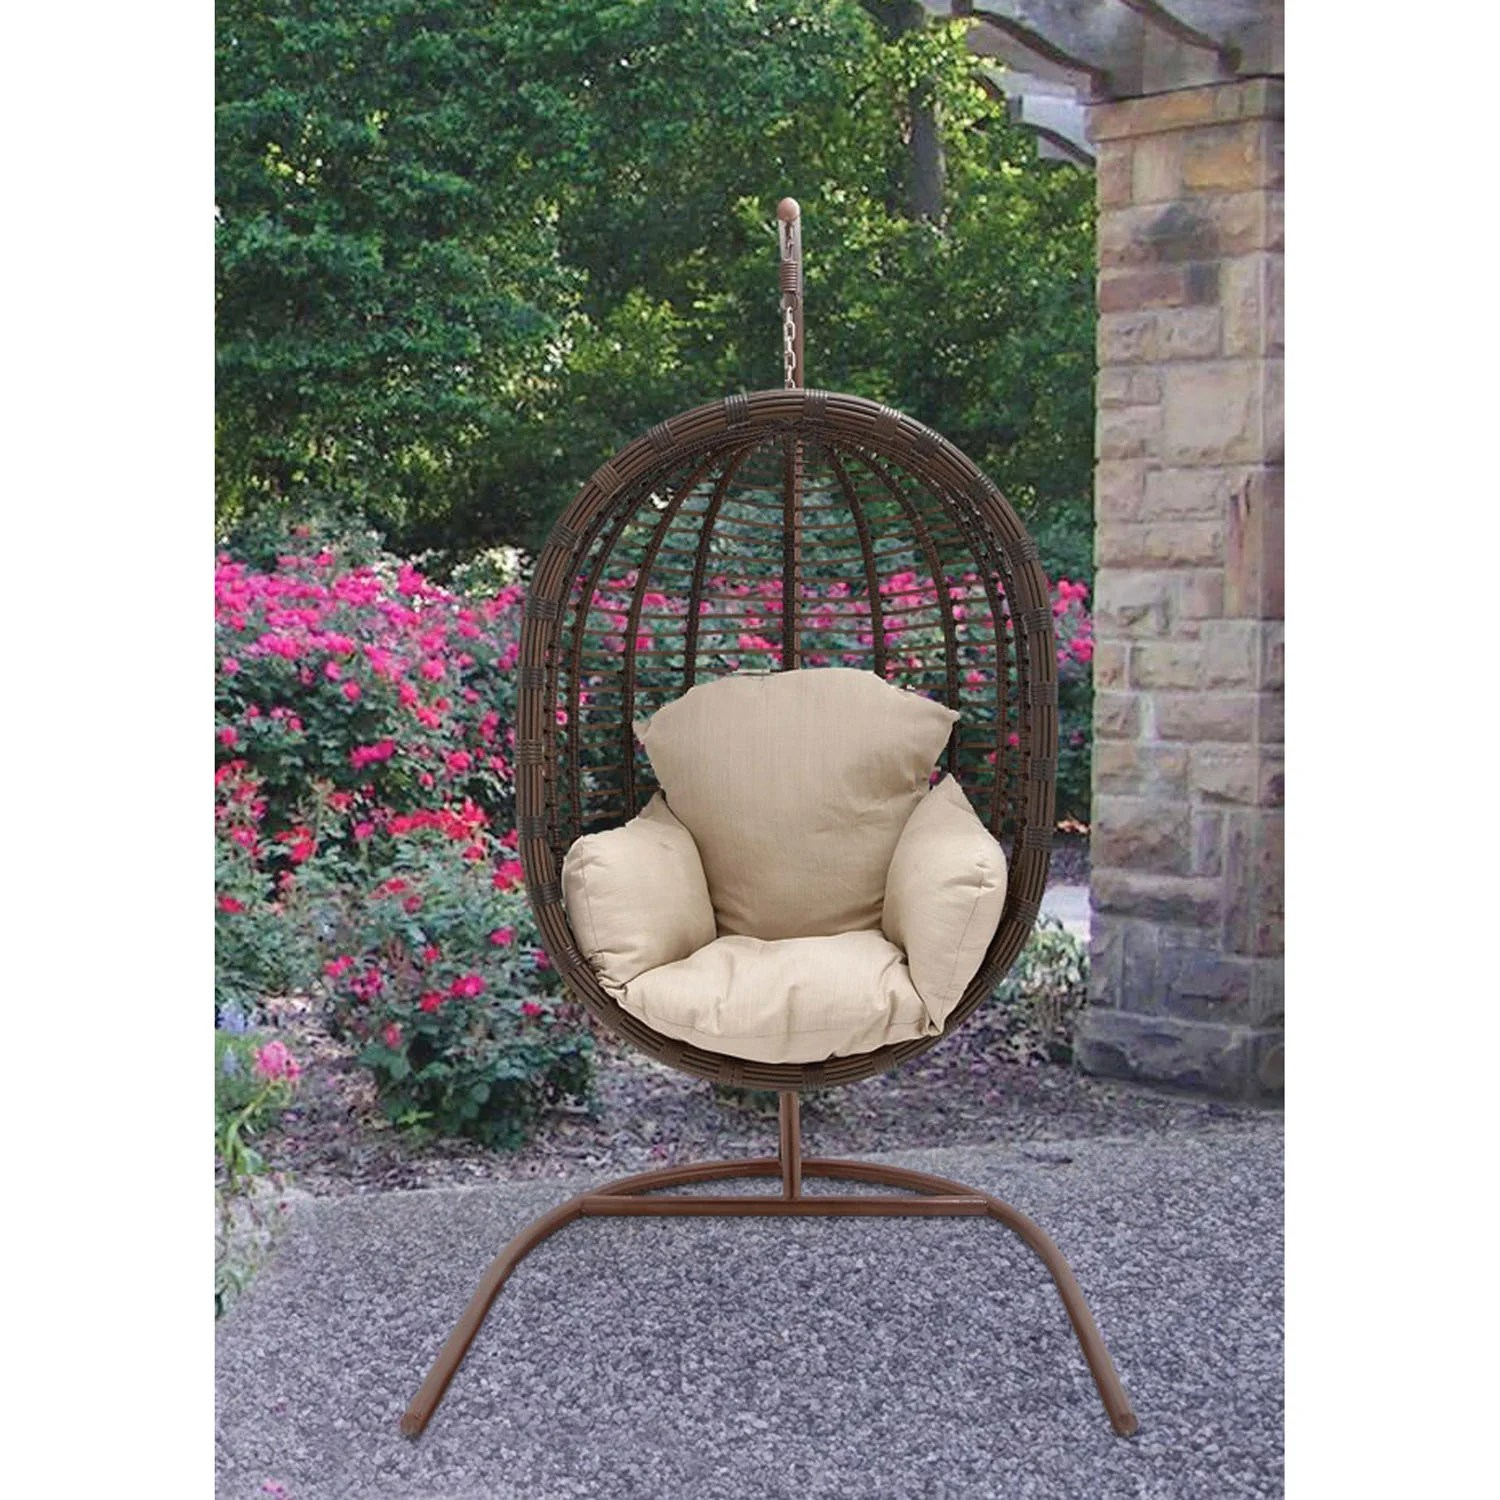 Egg Wicker Chairs Outdoor Hanover Outdoor Egg Swing03 Hanging Wicker Pod Swing With Full Cream Cushion